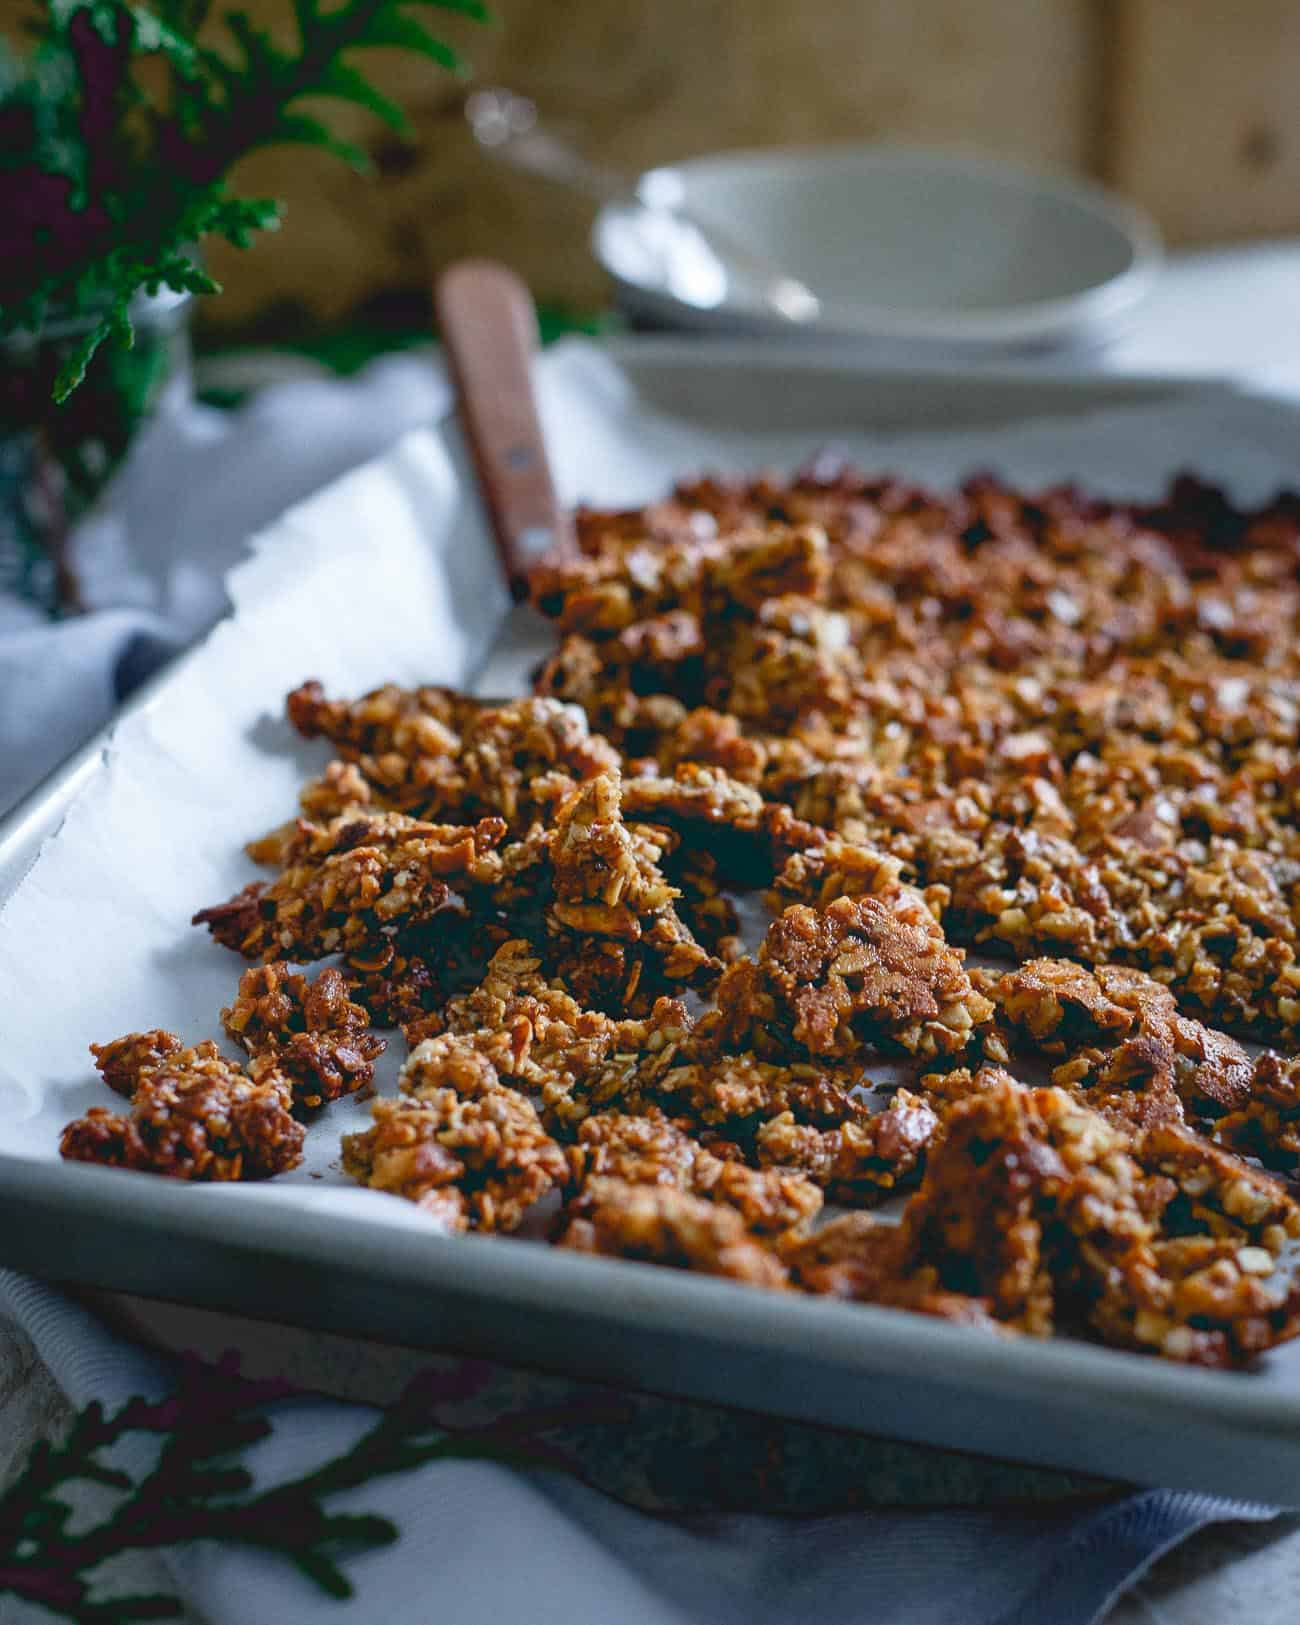 Great with milk, yogurt or just plain, this paleo gingerbread granola is a delicious treat for wintertime.